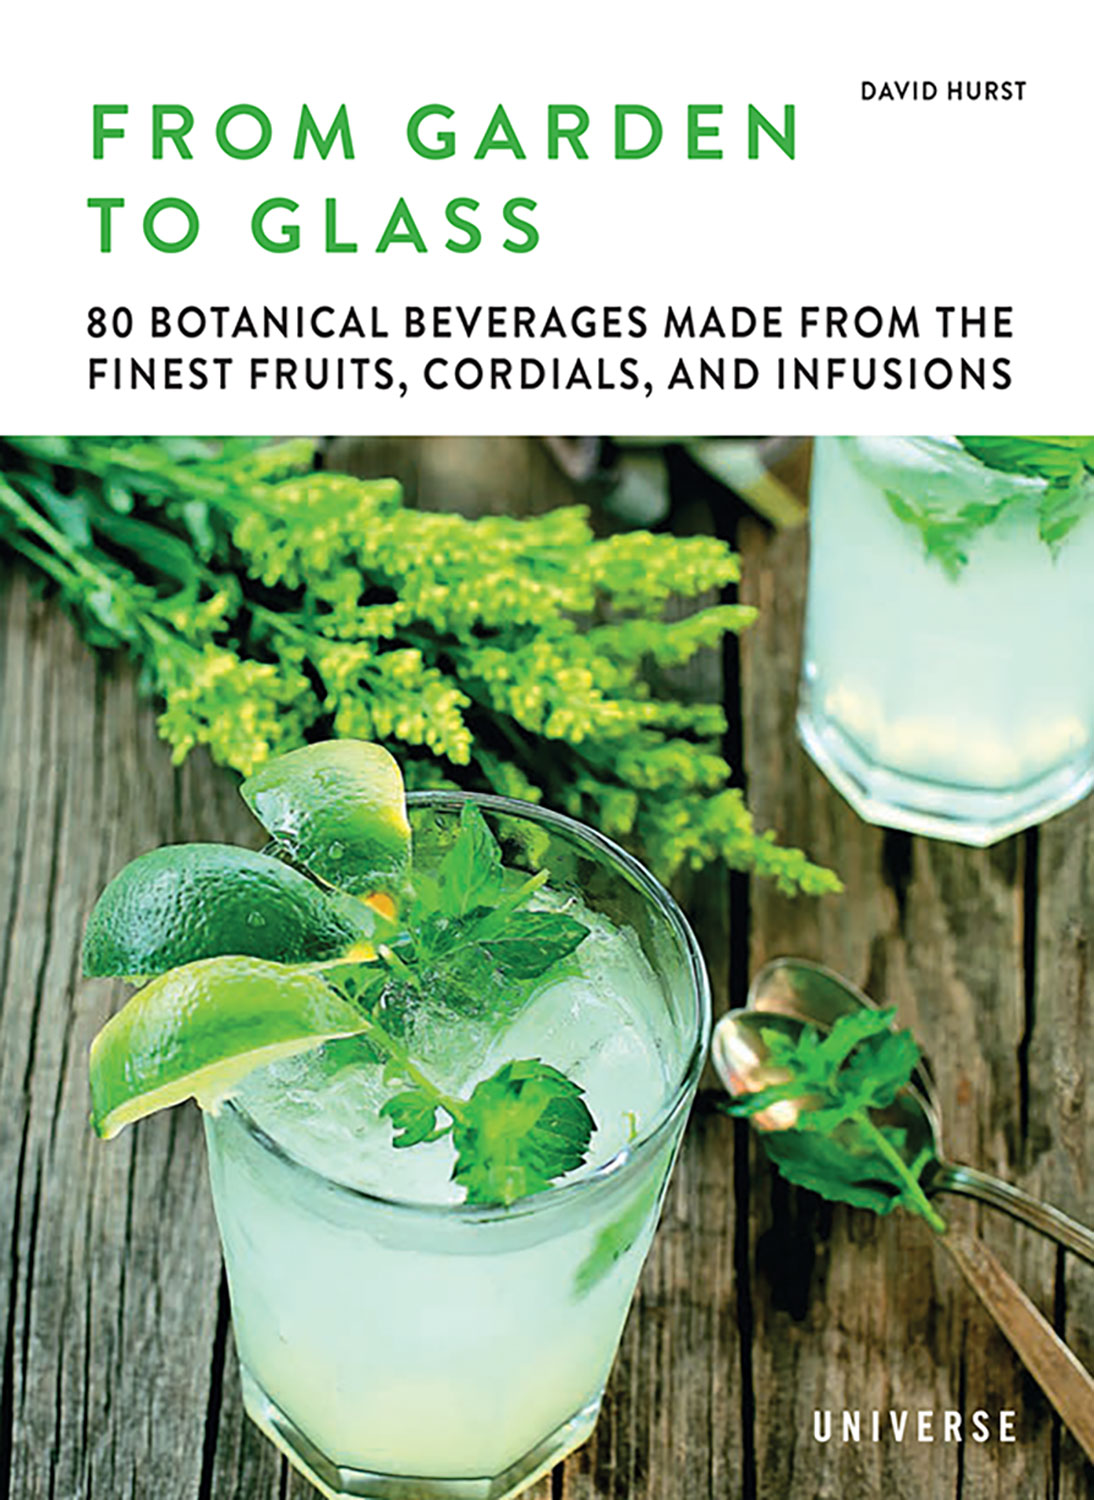 """Book cover for """"From Garden to Glass: 80 Botanical Beverages Made From the Finest Fruits, Cordials, and Infusions """" by David Hurst (Universe Publishing, 2019)"""